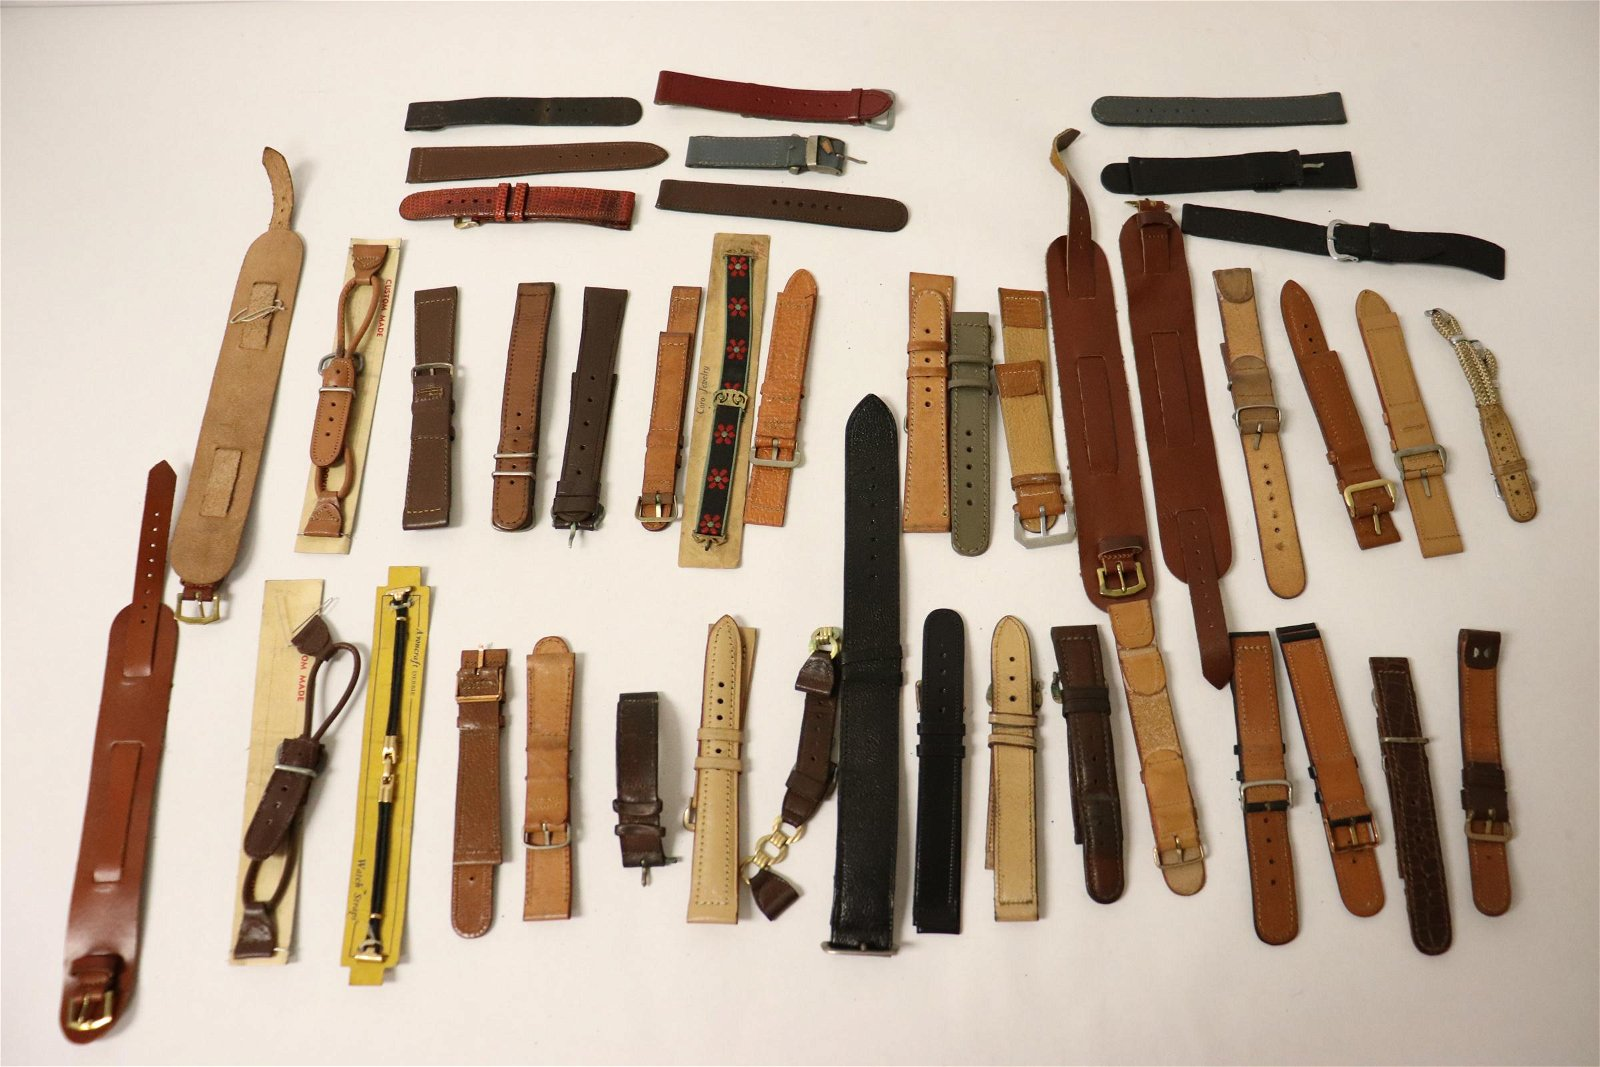 Approx. 40 watch bands